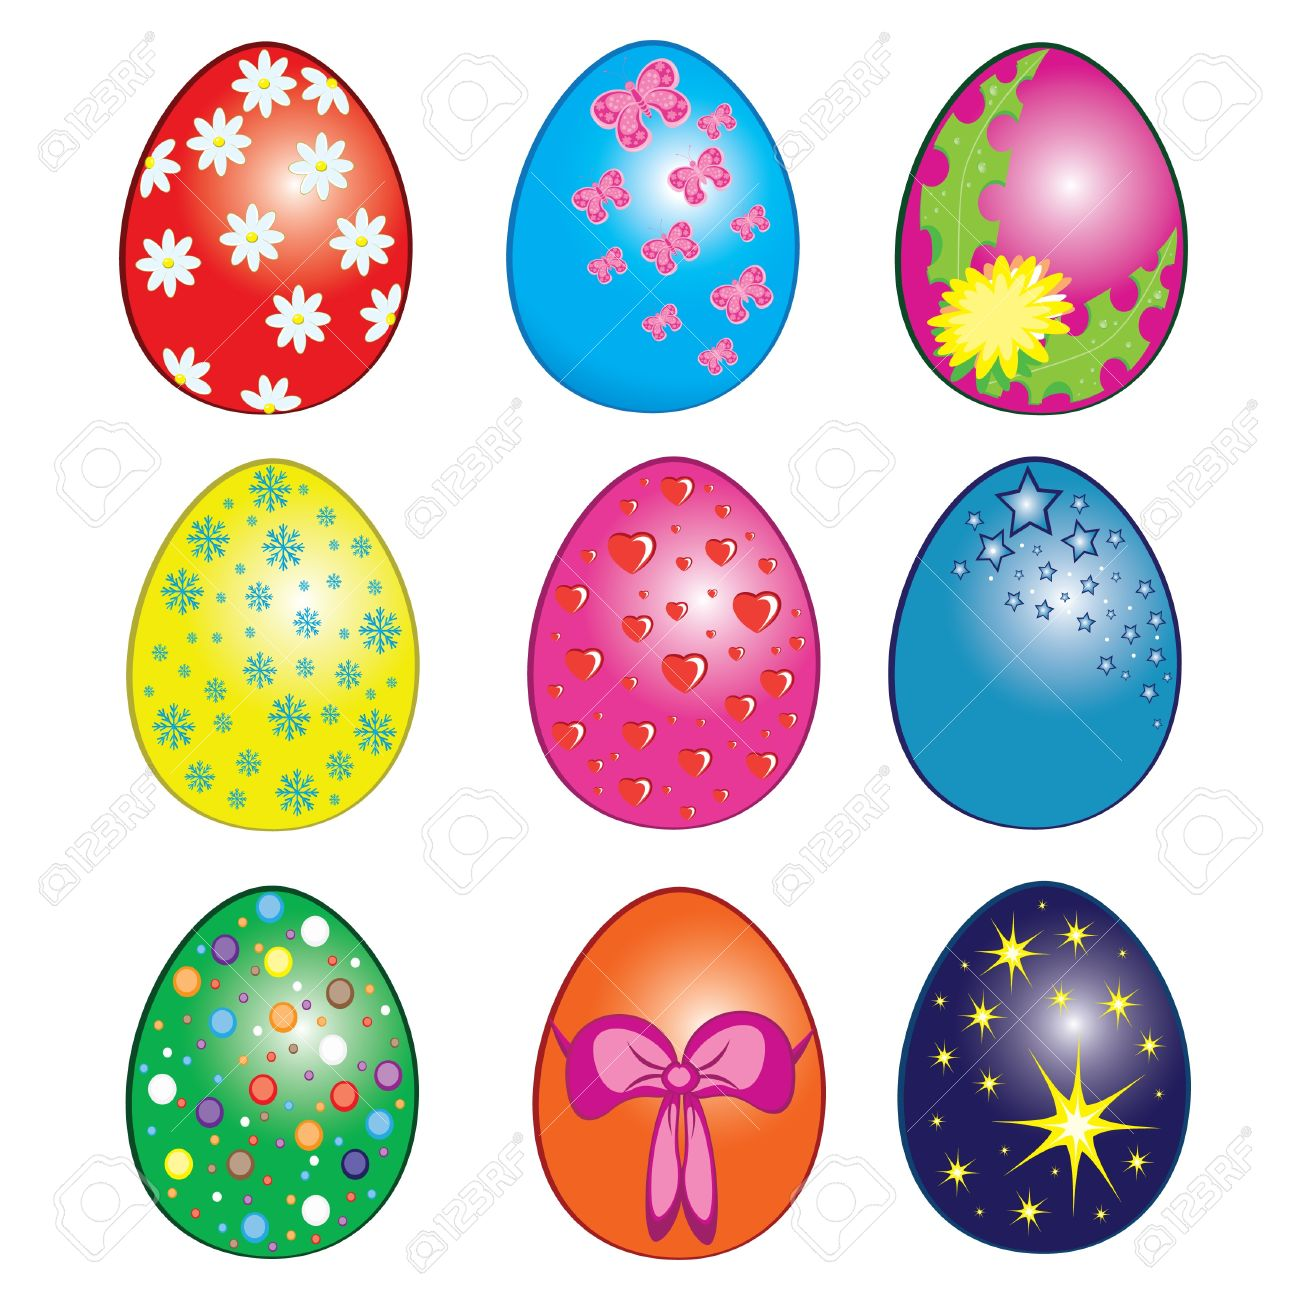 Egg easter clipart svg freeuse download Easter eggs with numbers clipart - ClipartFest svg freeuse download